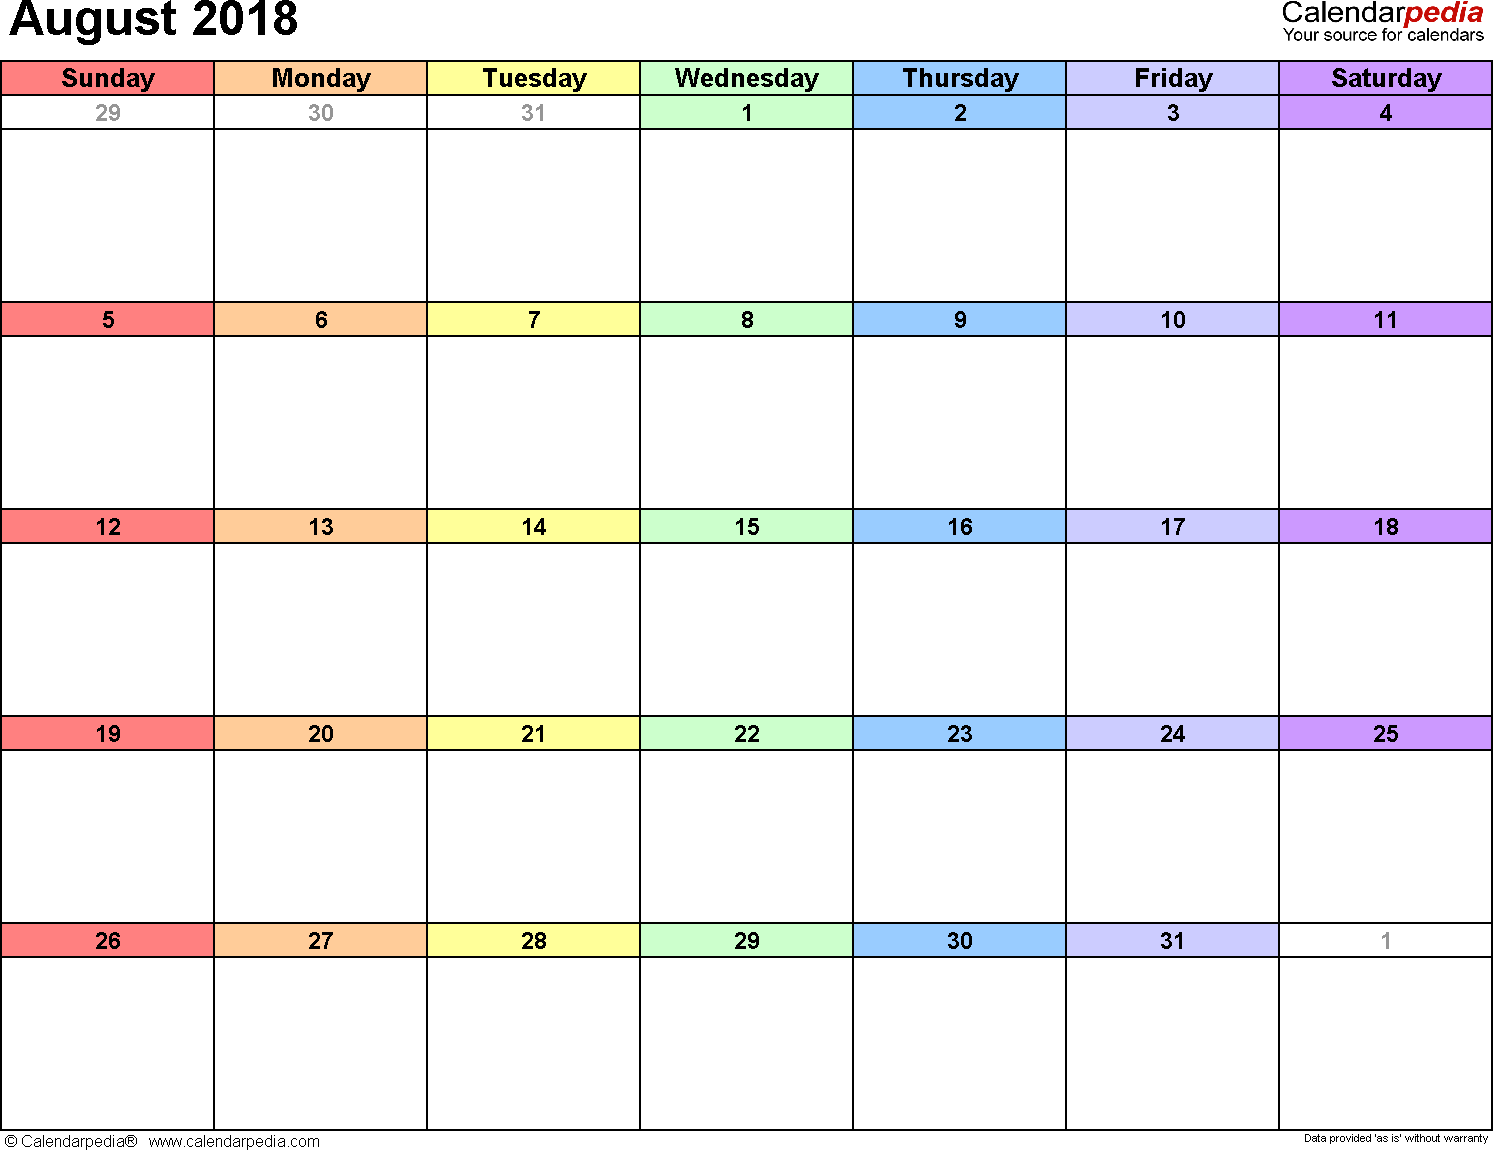 Calendar templates August 2018 in landscape format